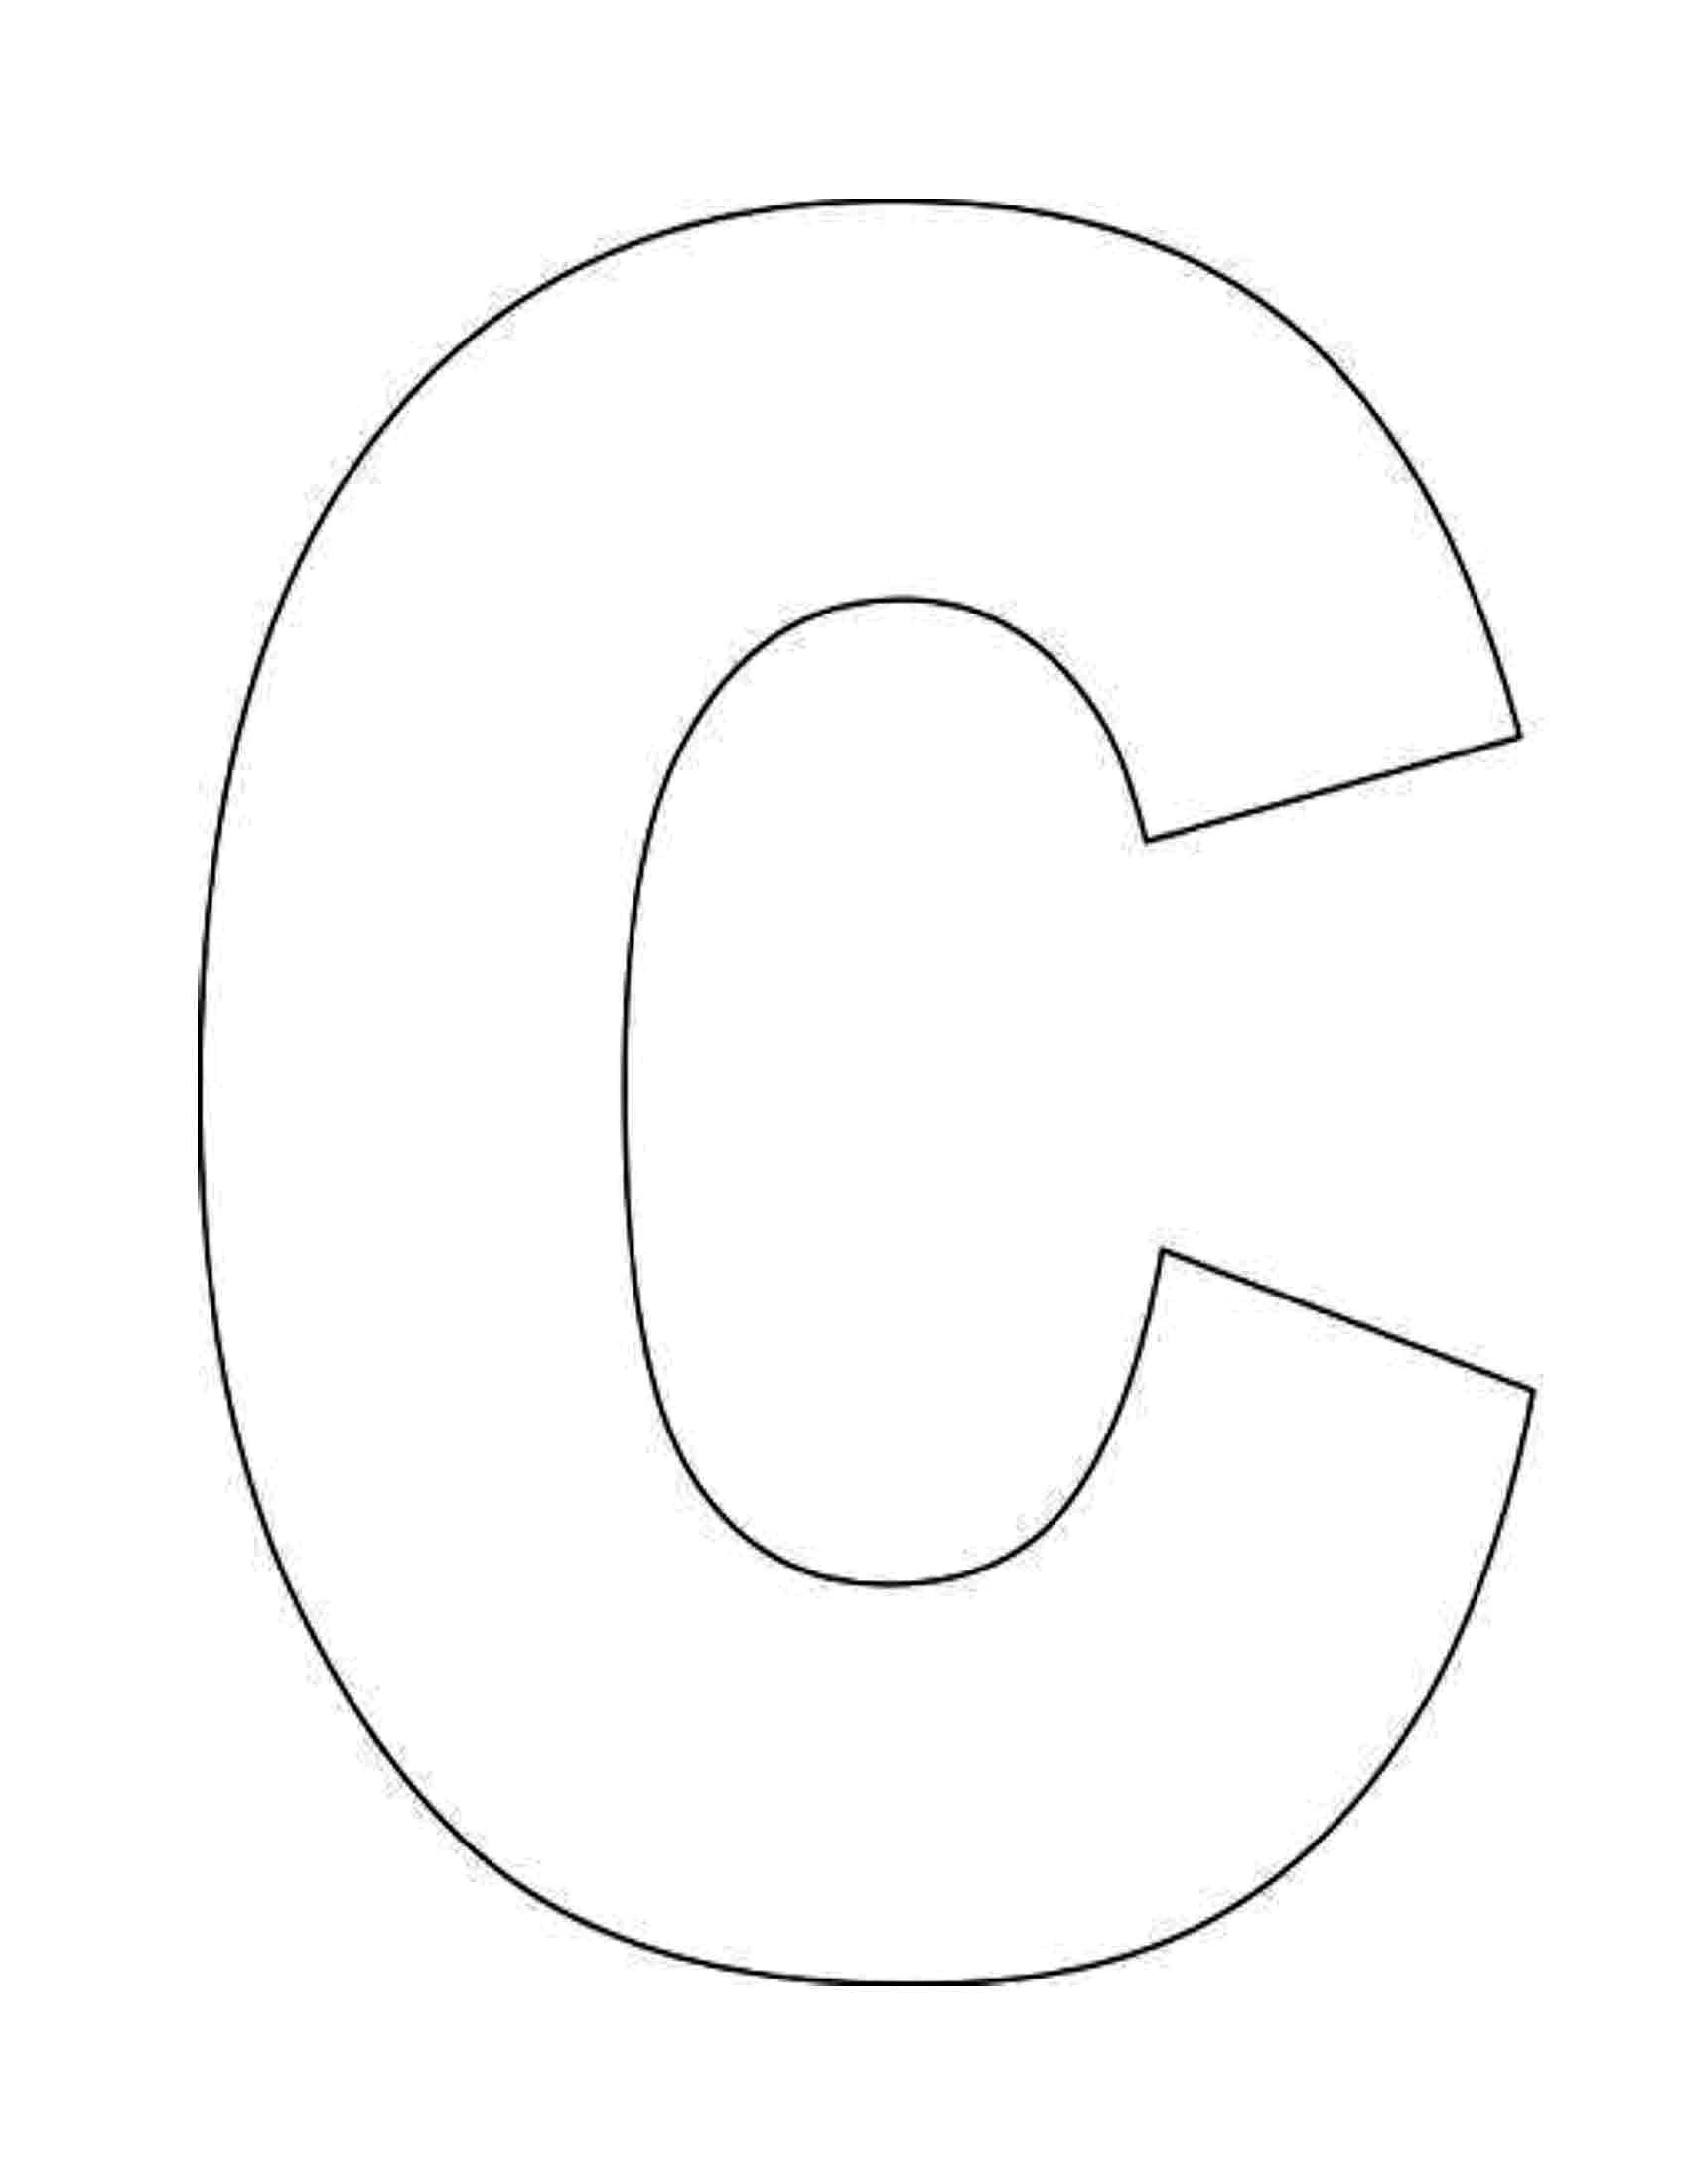 Download Or Print This Amazing Coloring Page Letter C